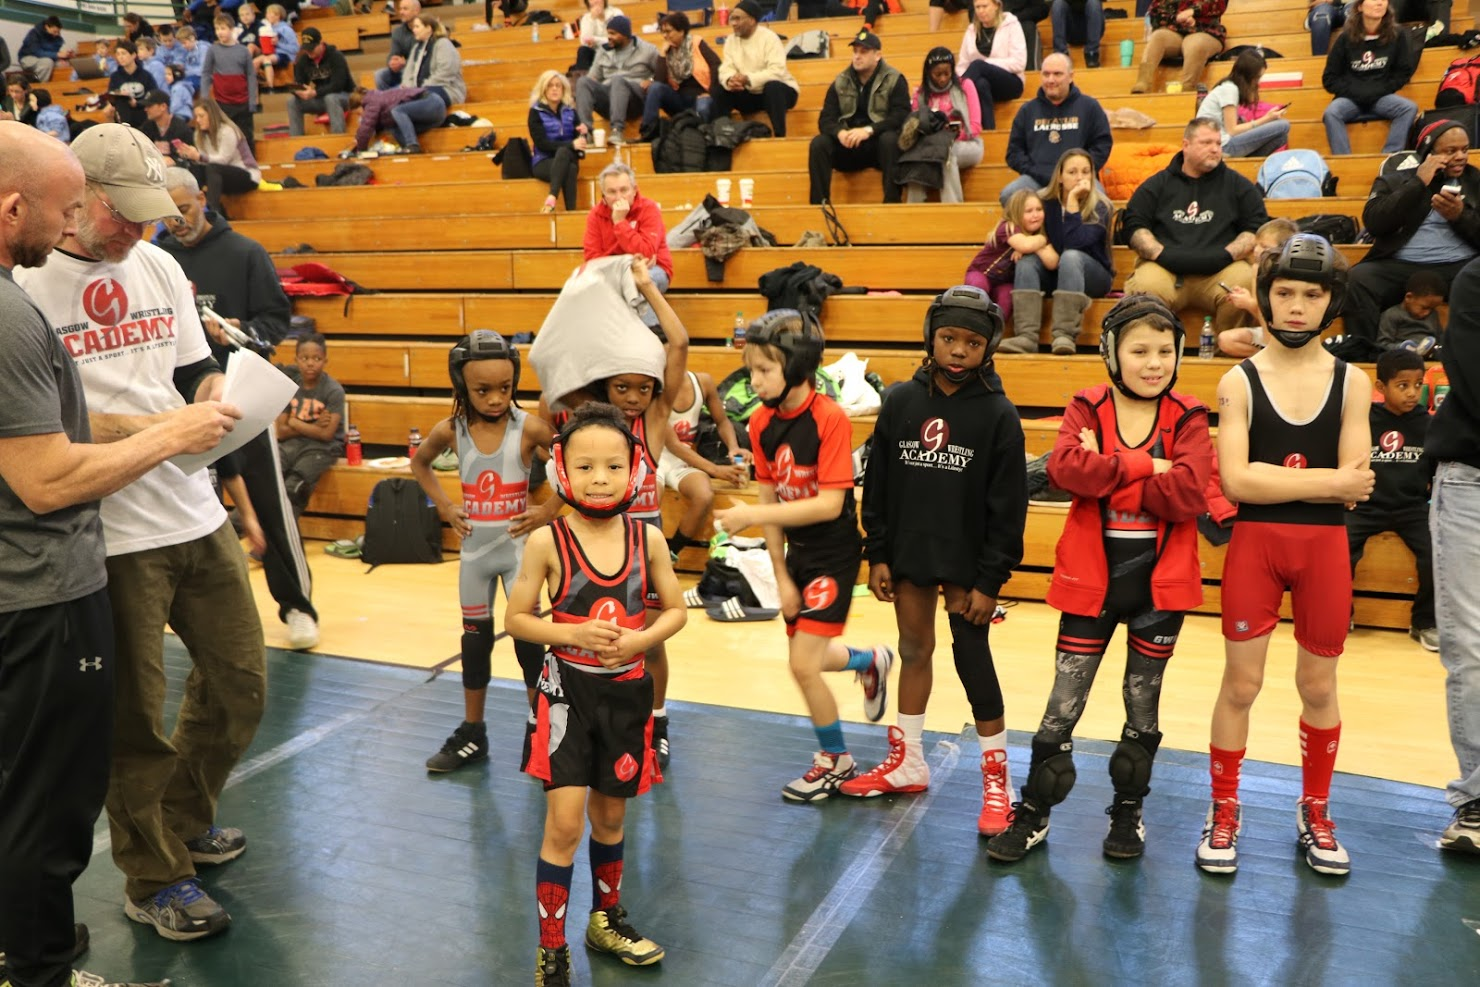 Collins Hill Duals